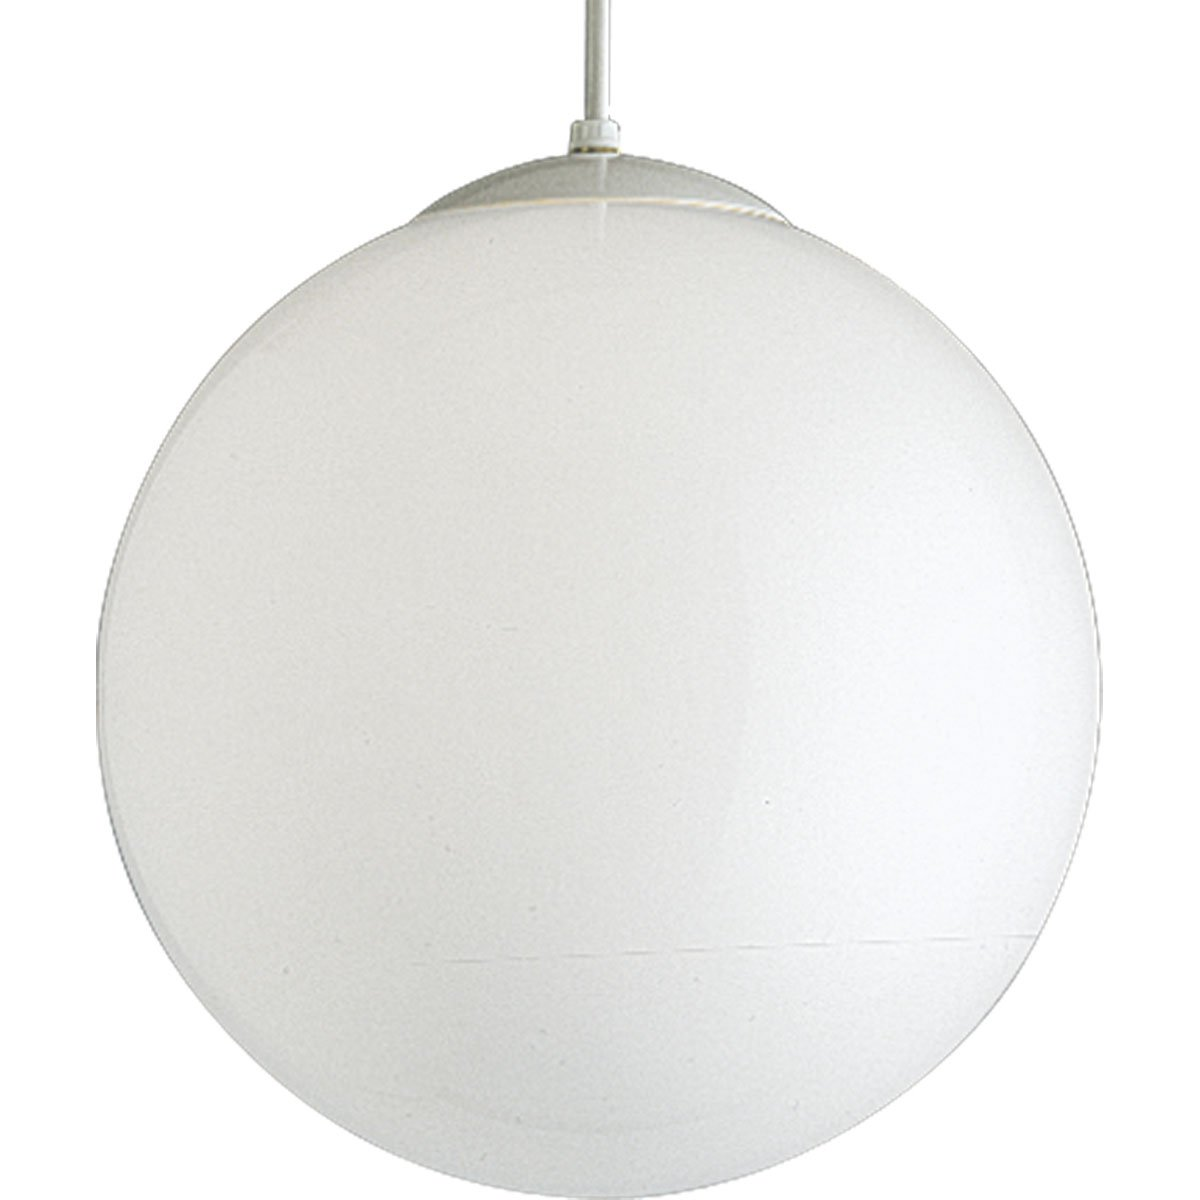 Progress Lighting P4406-29 Opal Cased Globes Provide Evenly Diffused Illumination White Cord, Canopy and Cap, Satin White by Progress Lighting